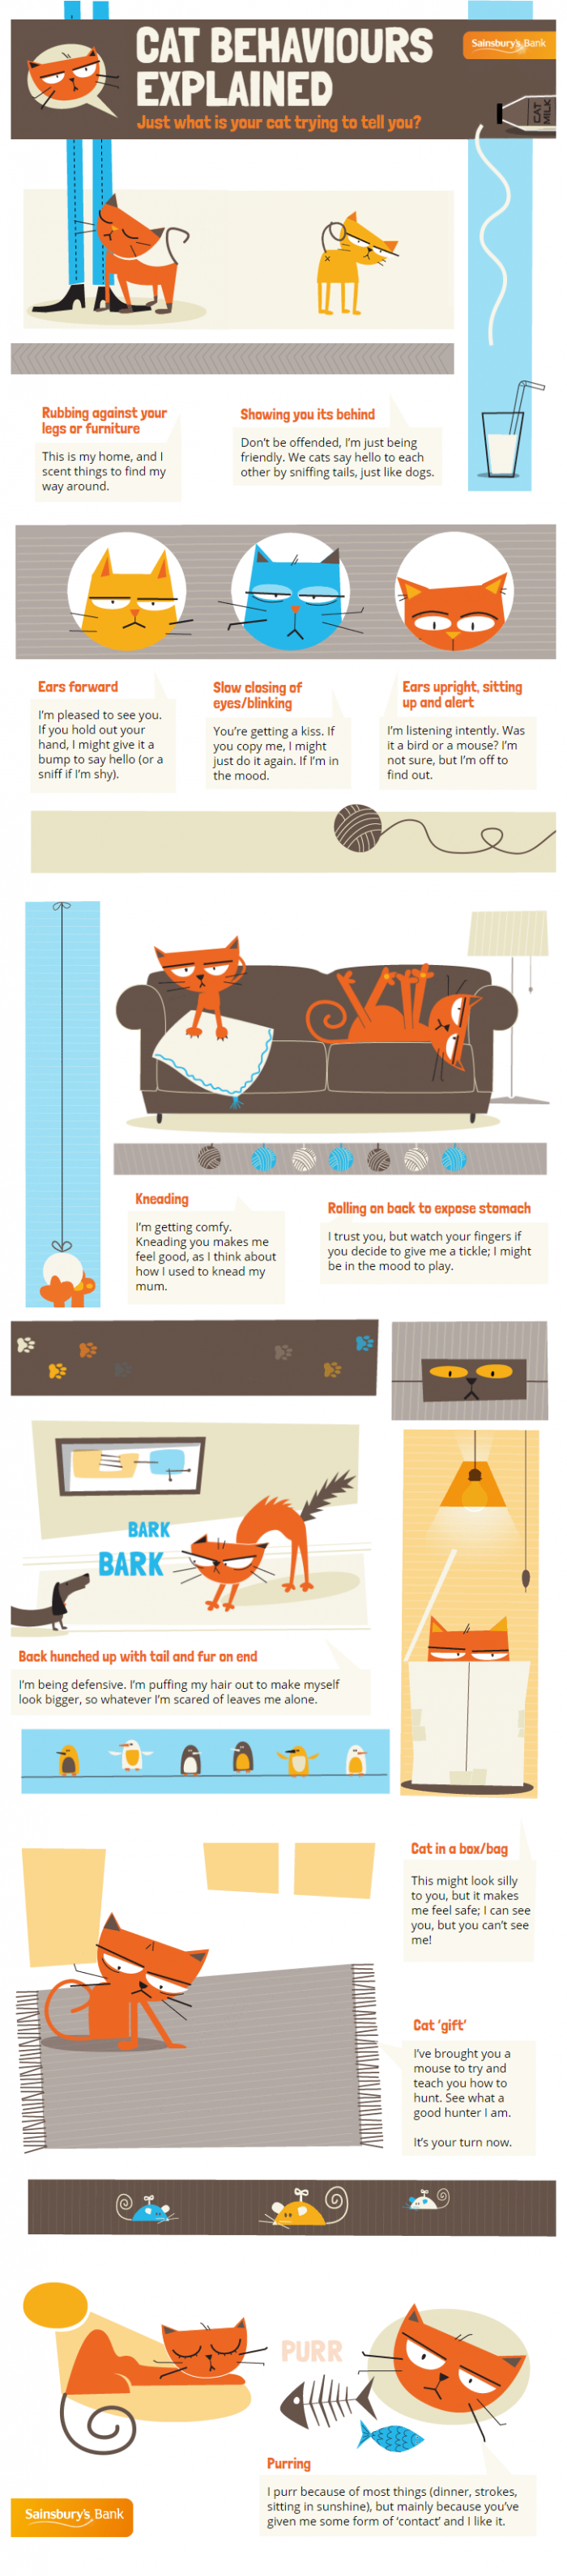 Sainsbury Bank Money Matter Blog Your Cat Behaviour